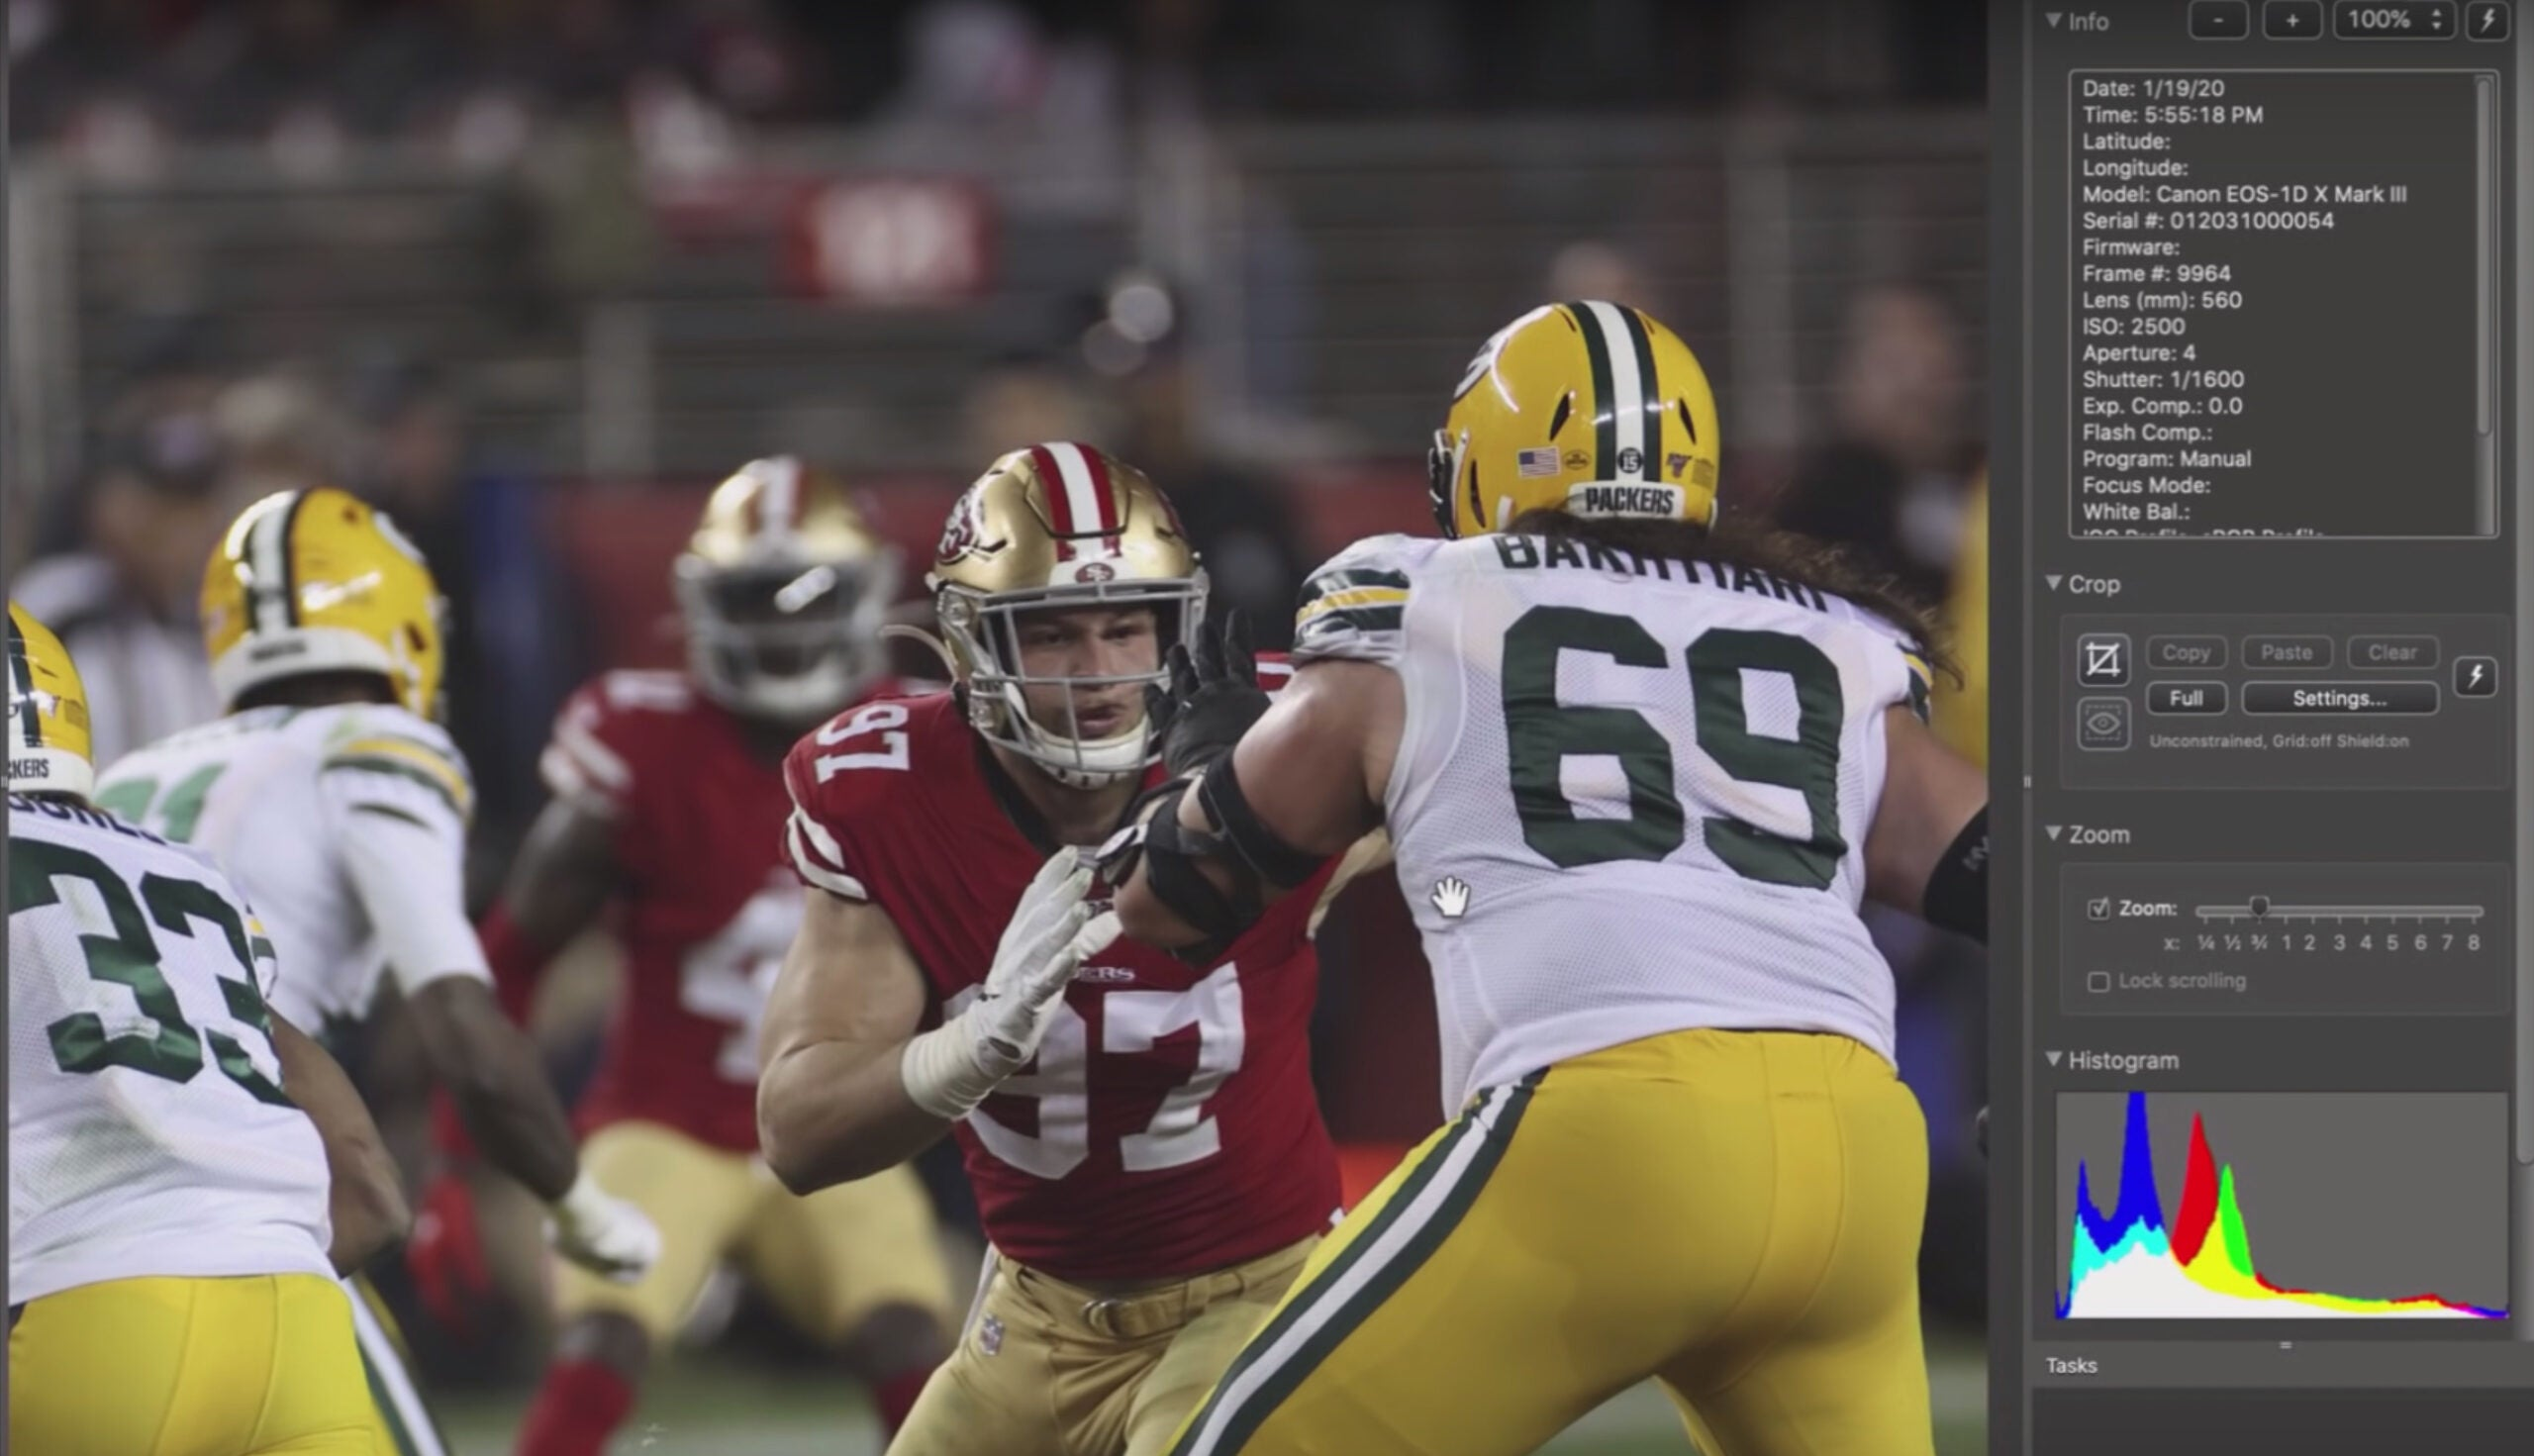 A sample image shot with the Canon 1D X Mark III during the San Francisco 49ers and Green Bay Packers playoff game